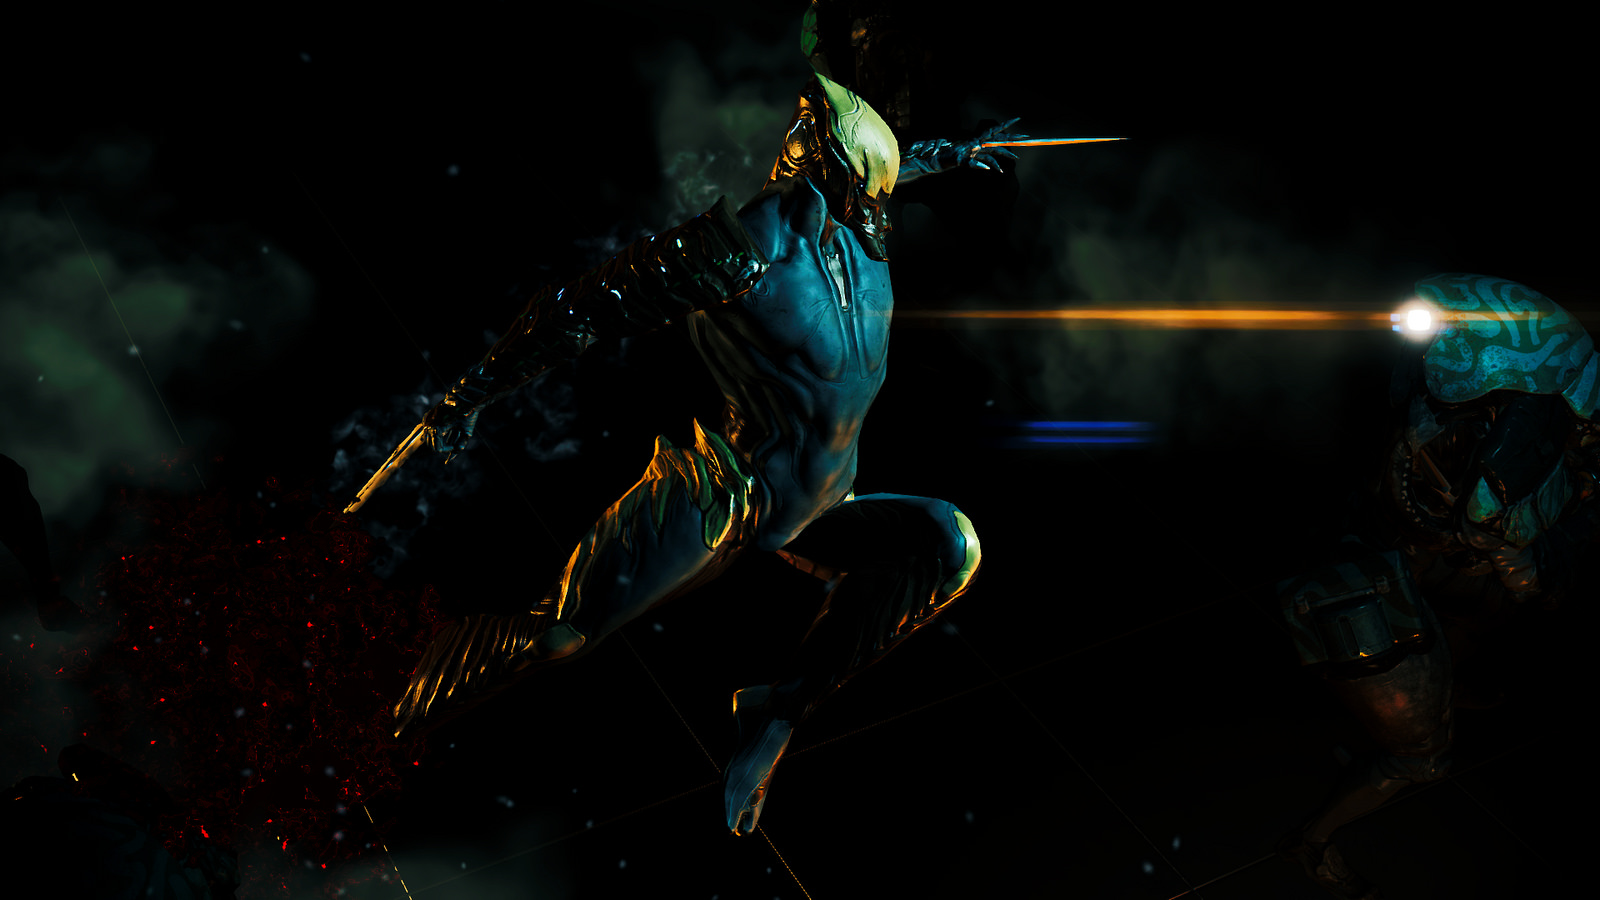 Warframe Ash Wallpaper 11139548873 ef2a60cf43 hjpg 1600x900